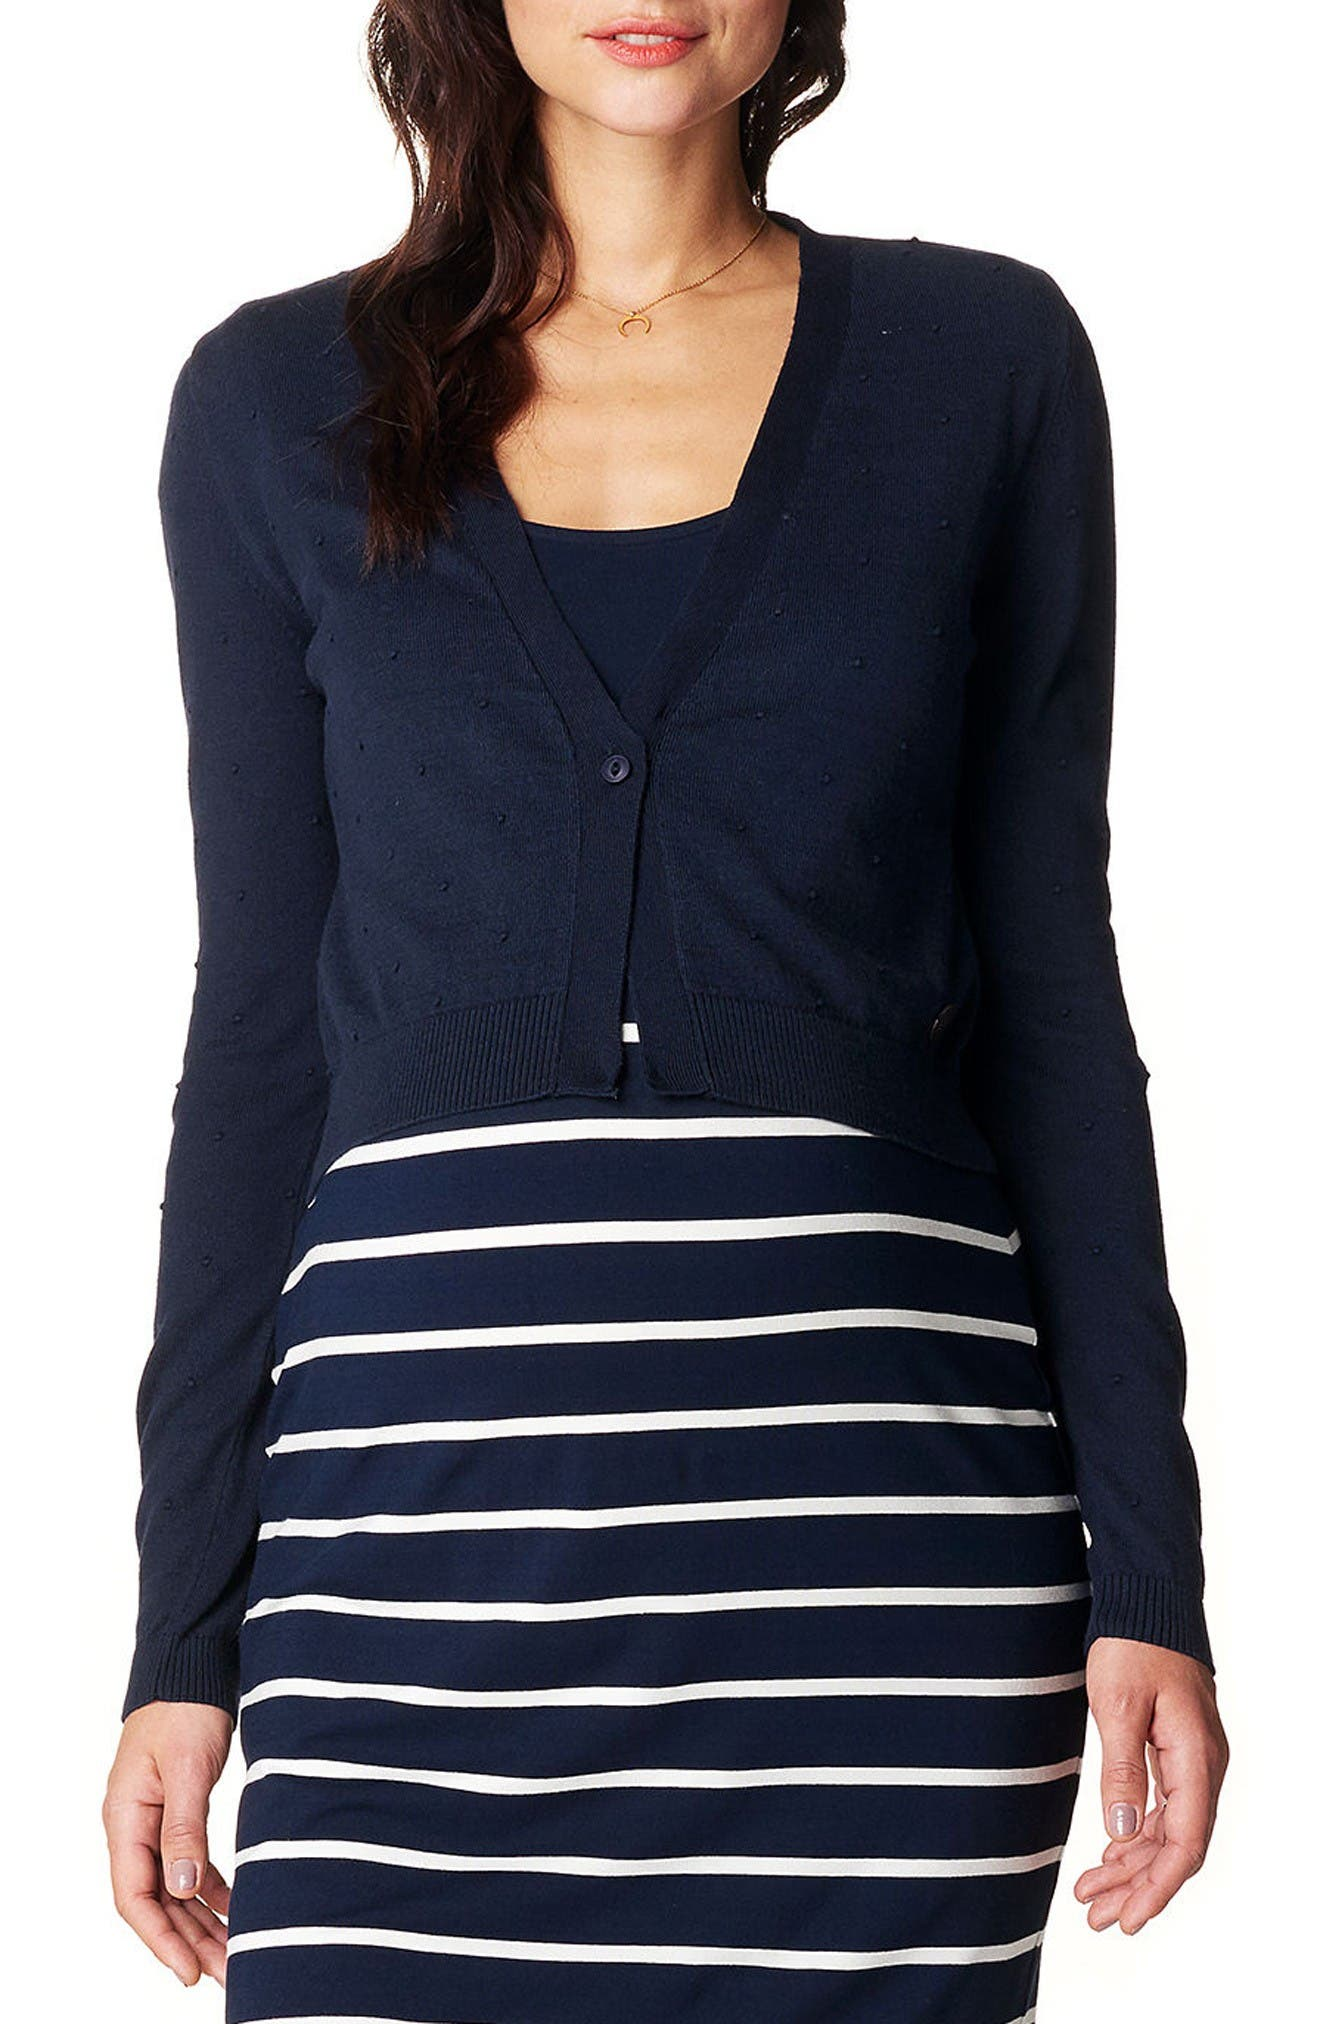 Noppies Lori Knit Crop Maternity Cardigan